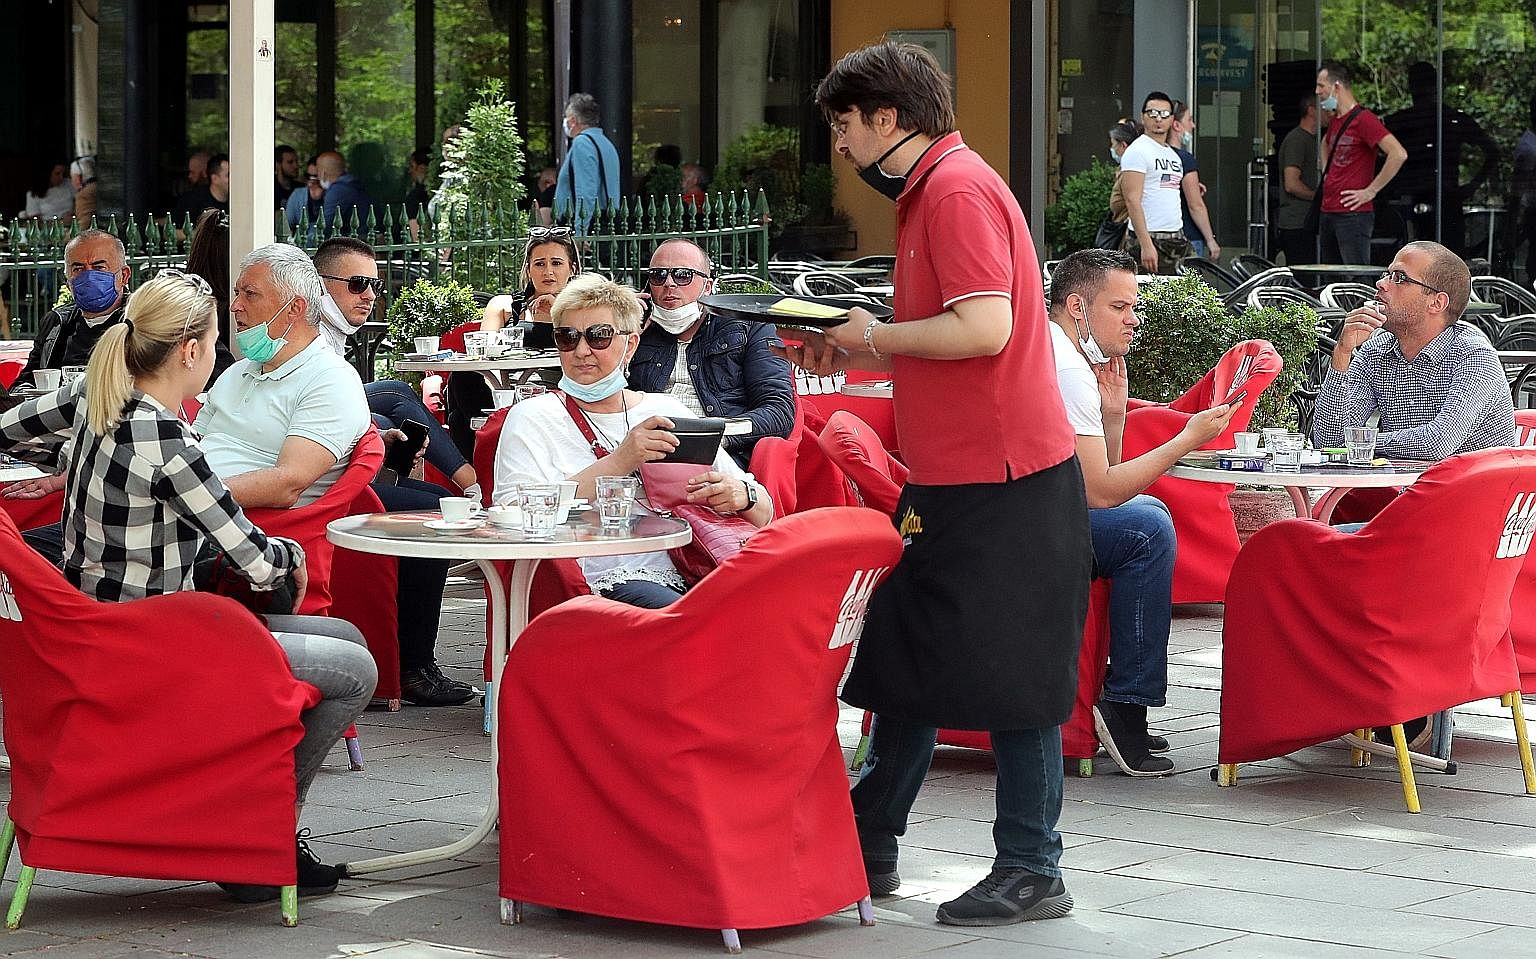 The crowd, mostly wearing face masks, at an outdoor cafe in Sarajevo, Bosnia and Herzegovina, last Wednesday. Restaurants and hotels are reopening in the West Balkan country after remaining closed for the past two months due to the on